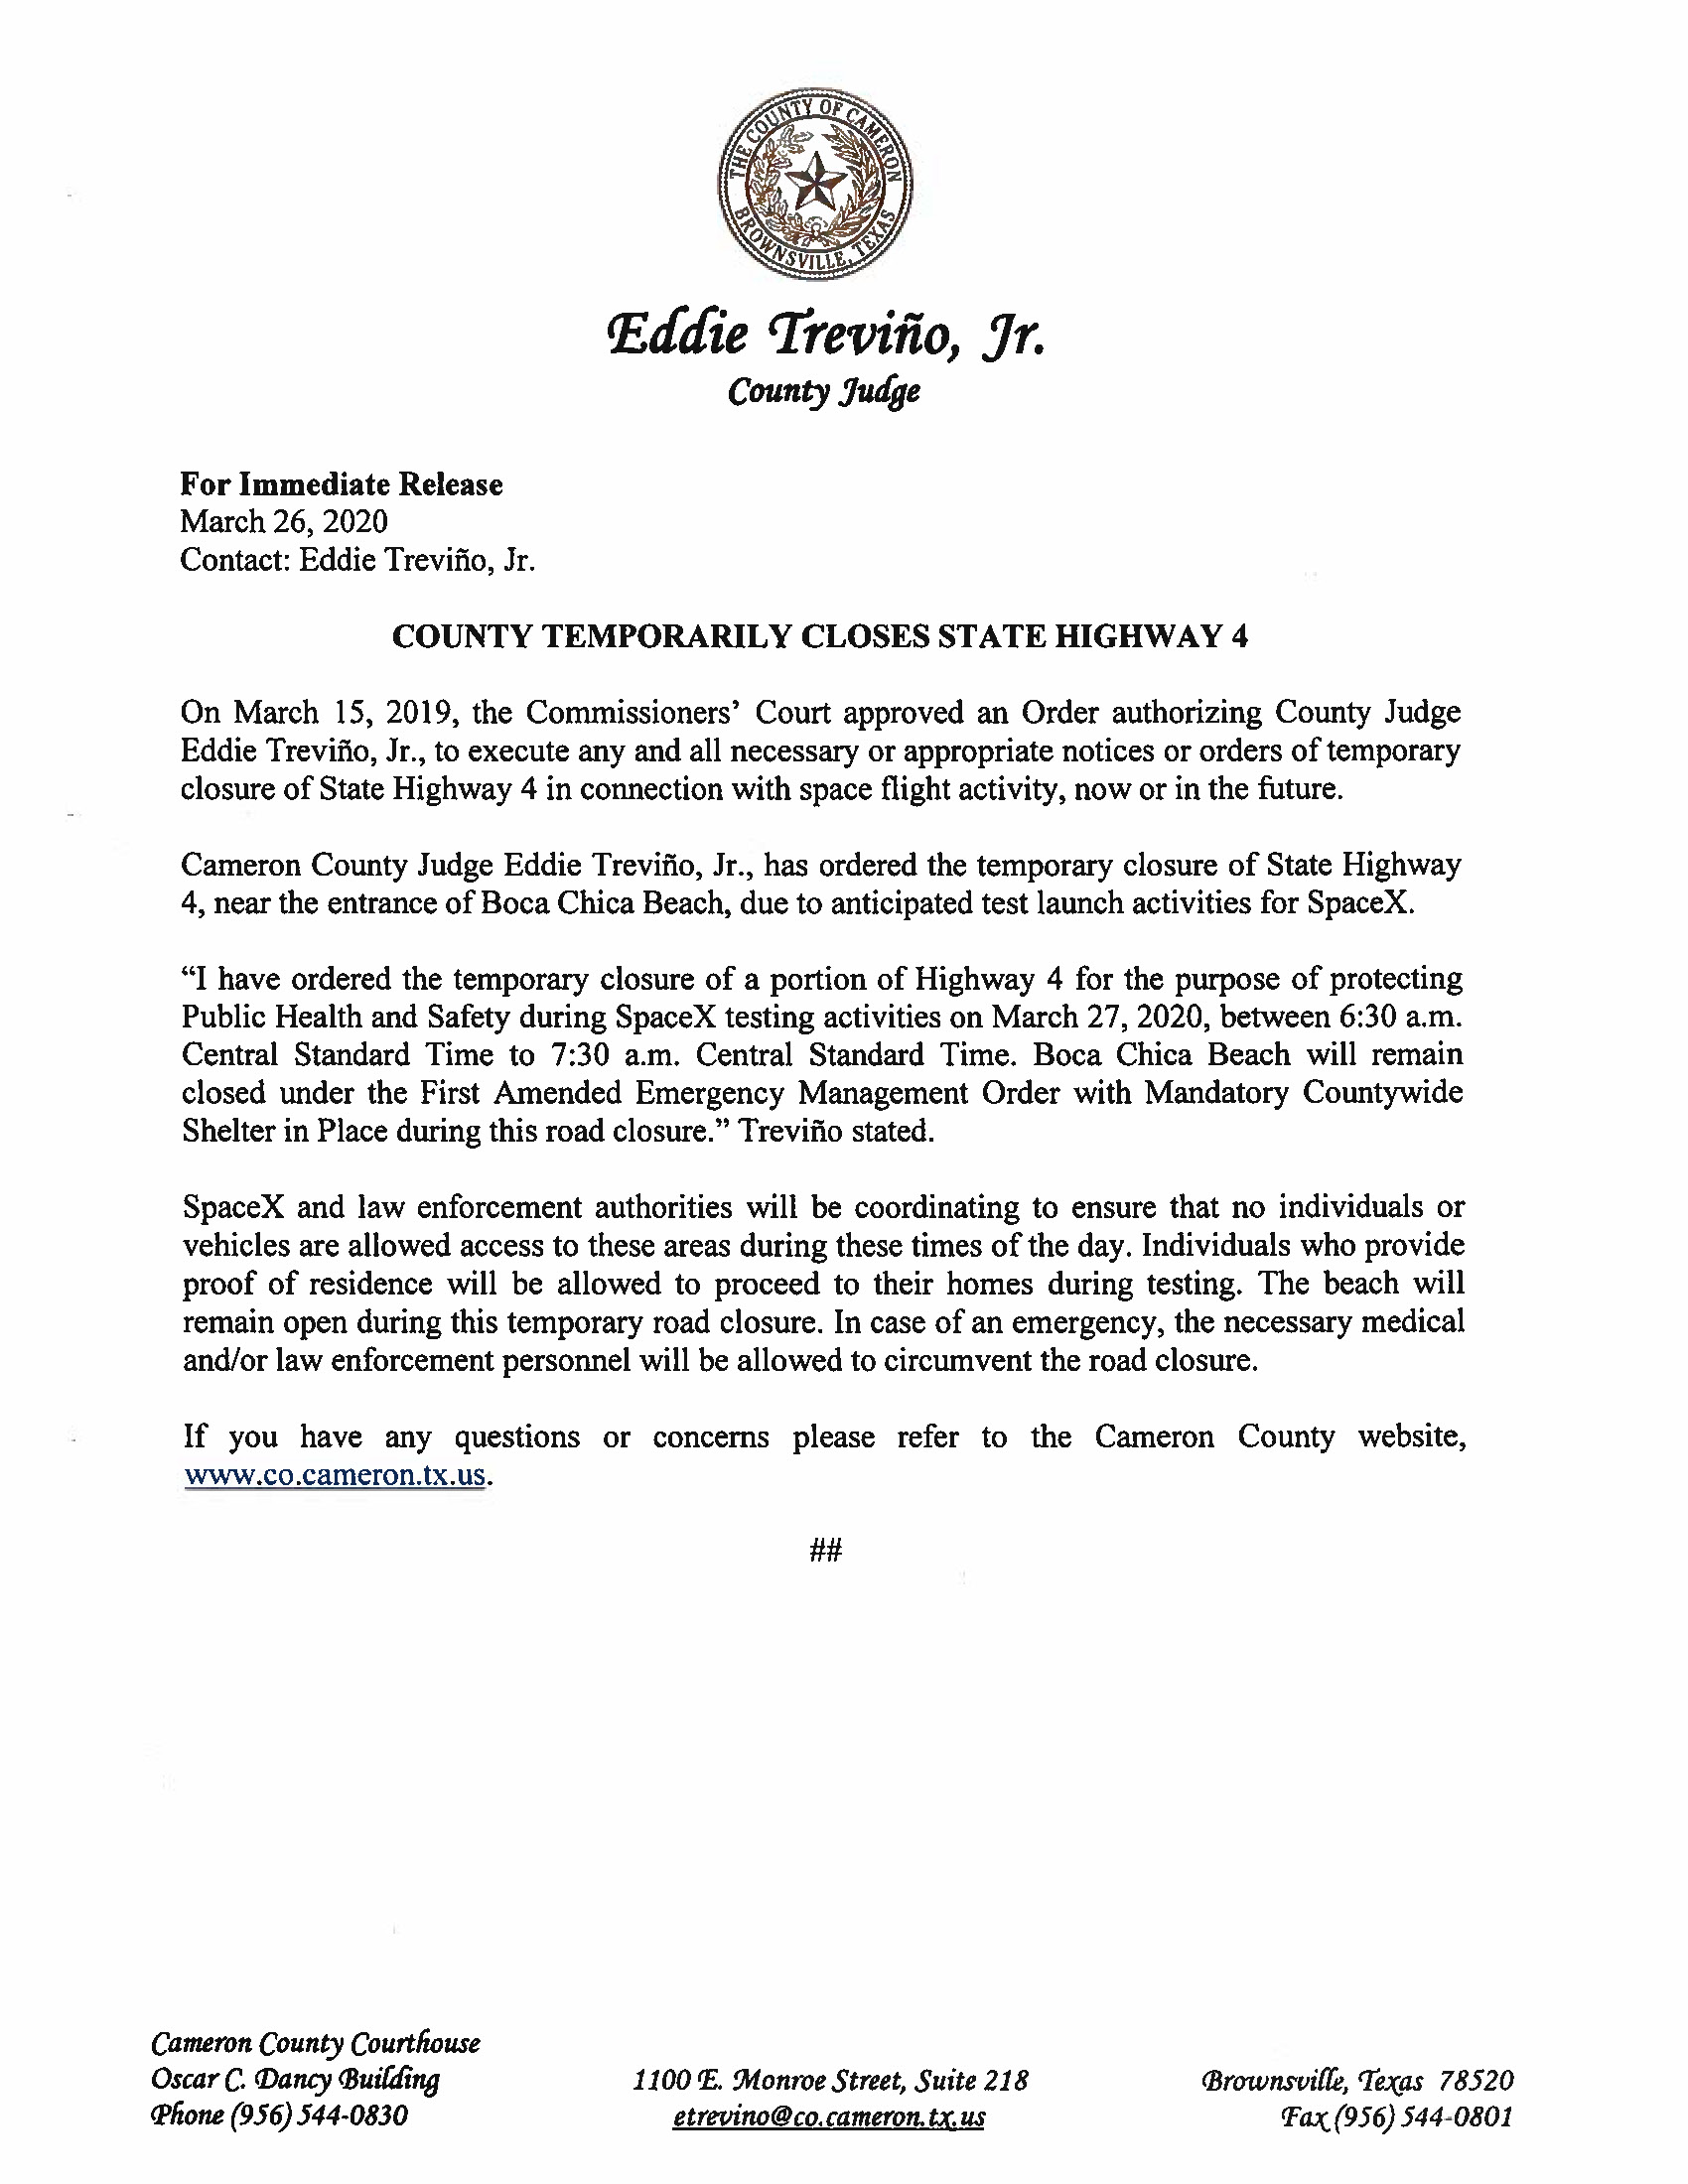 Press Release English Spanish For 03.27.2020.State Hwy 4 Closure Only Page 1